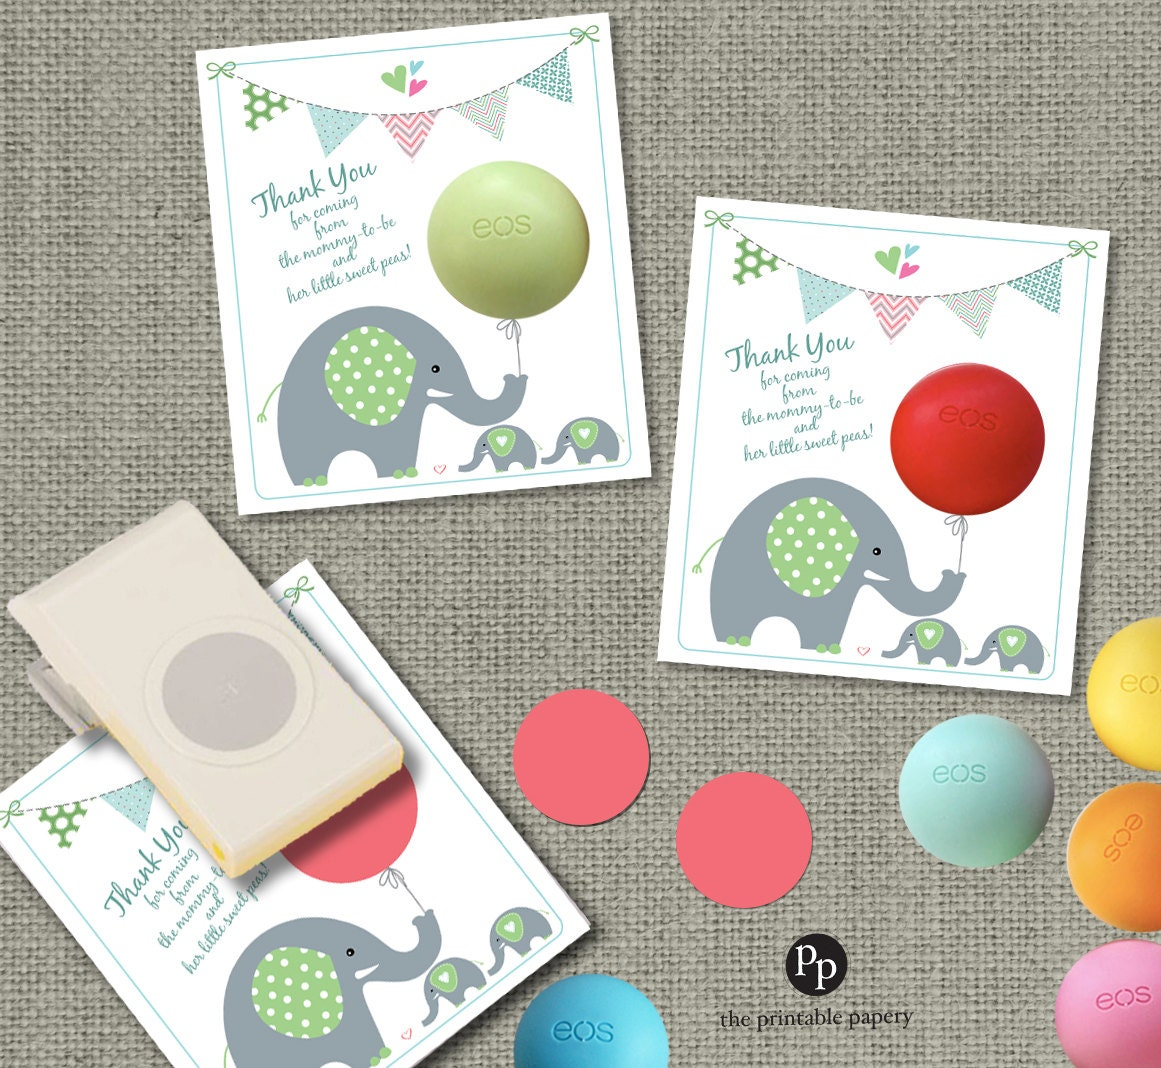 Twins Baby Shower Gift Tags For EOS Lip Balm Gifts Thank